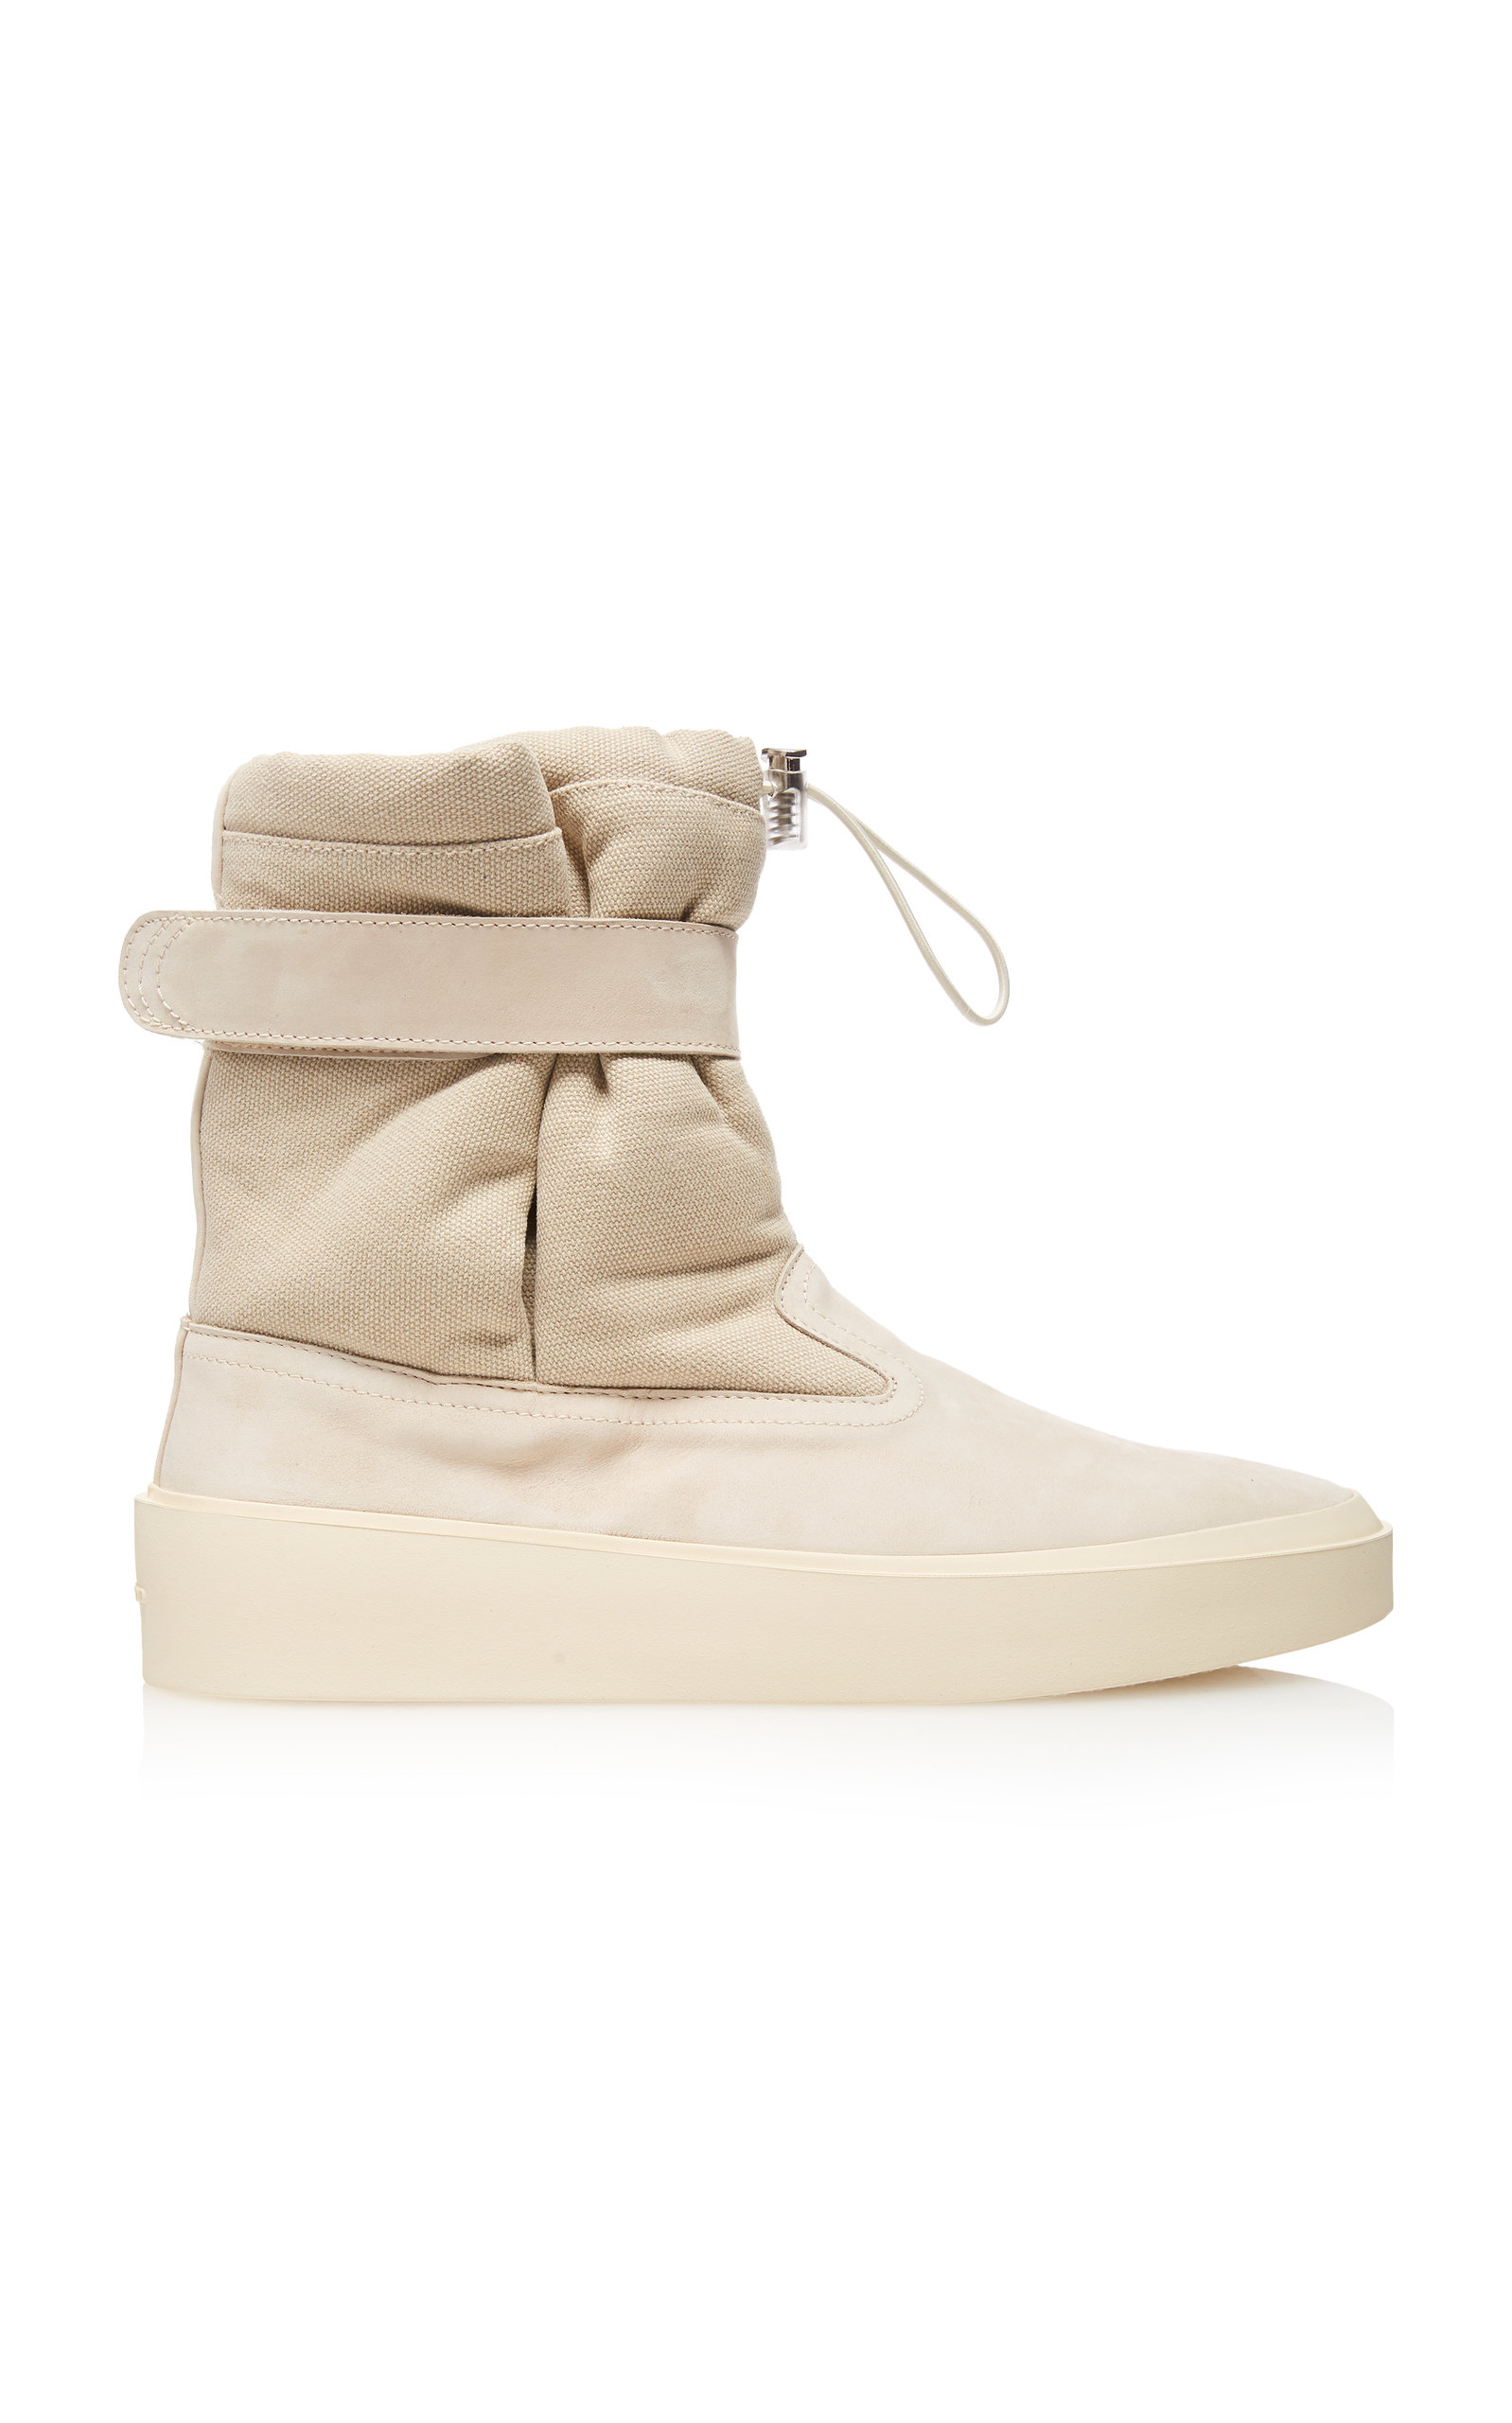 best website 2249c bf3be FEAR OF GODSki Lounge Suede And Canvas Sneakers. CLOSE. Loading